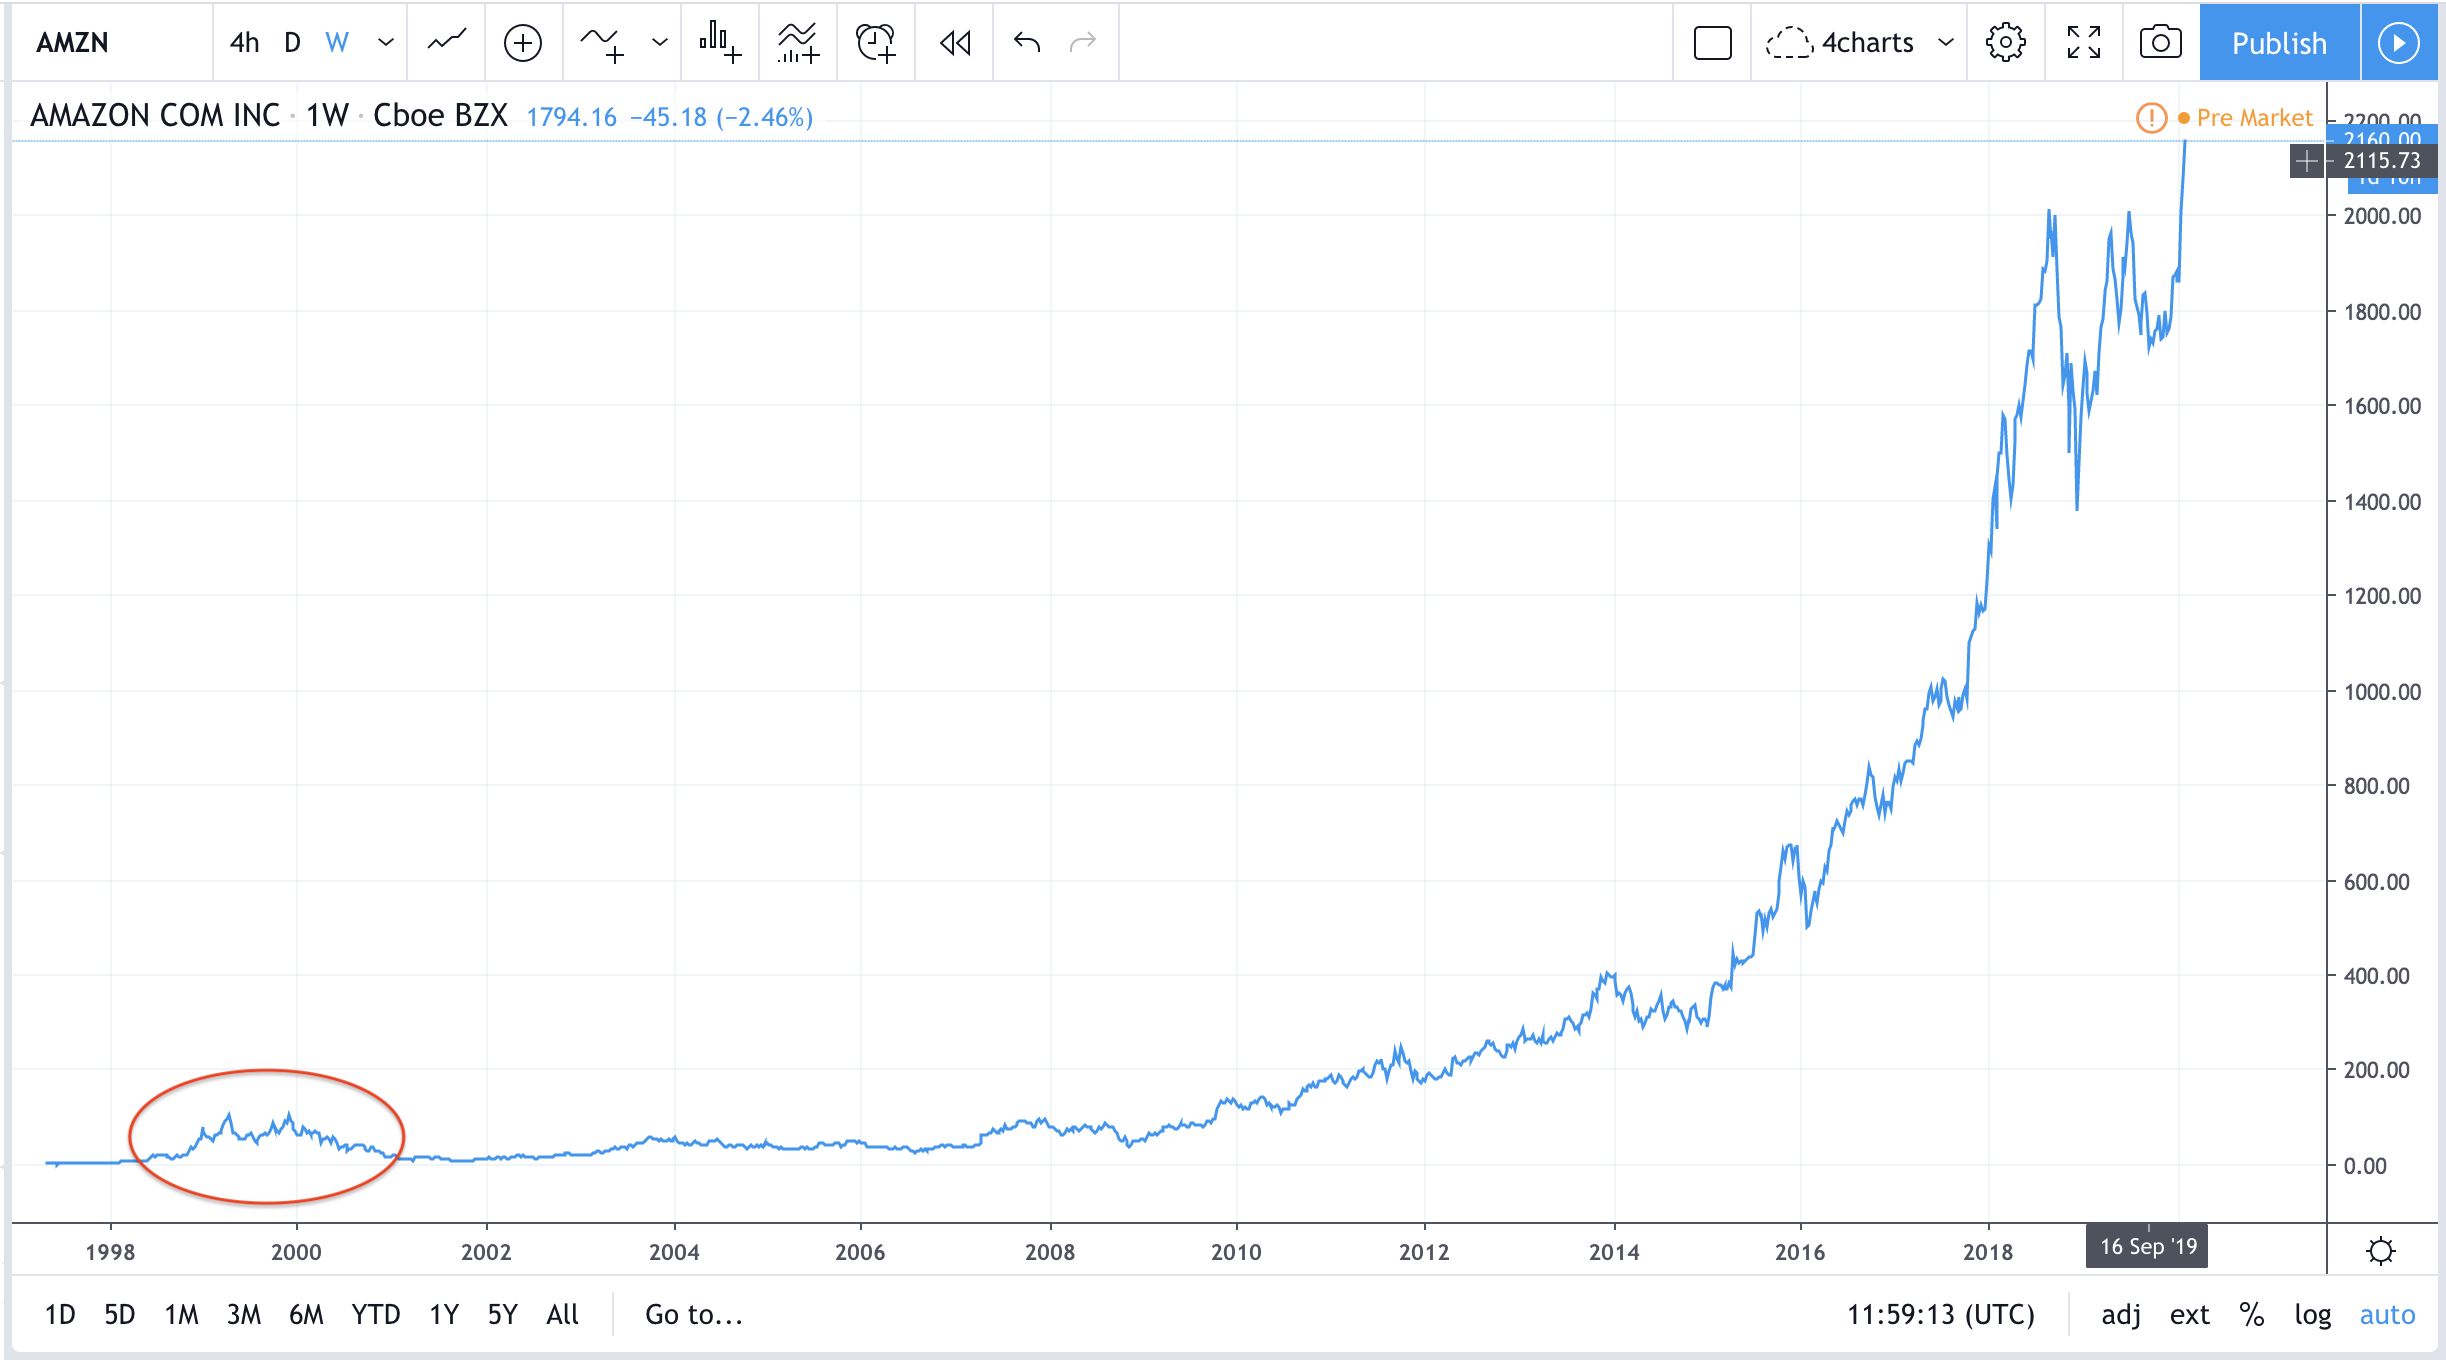 While crypto mania won't come back overnight, I suspect bitcoin and other crypto assets will follow Amazon's growth trajectory over the next few decades.